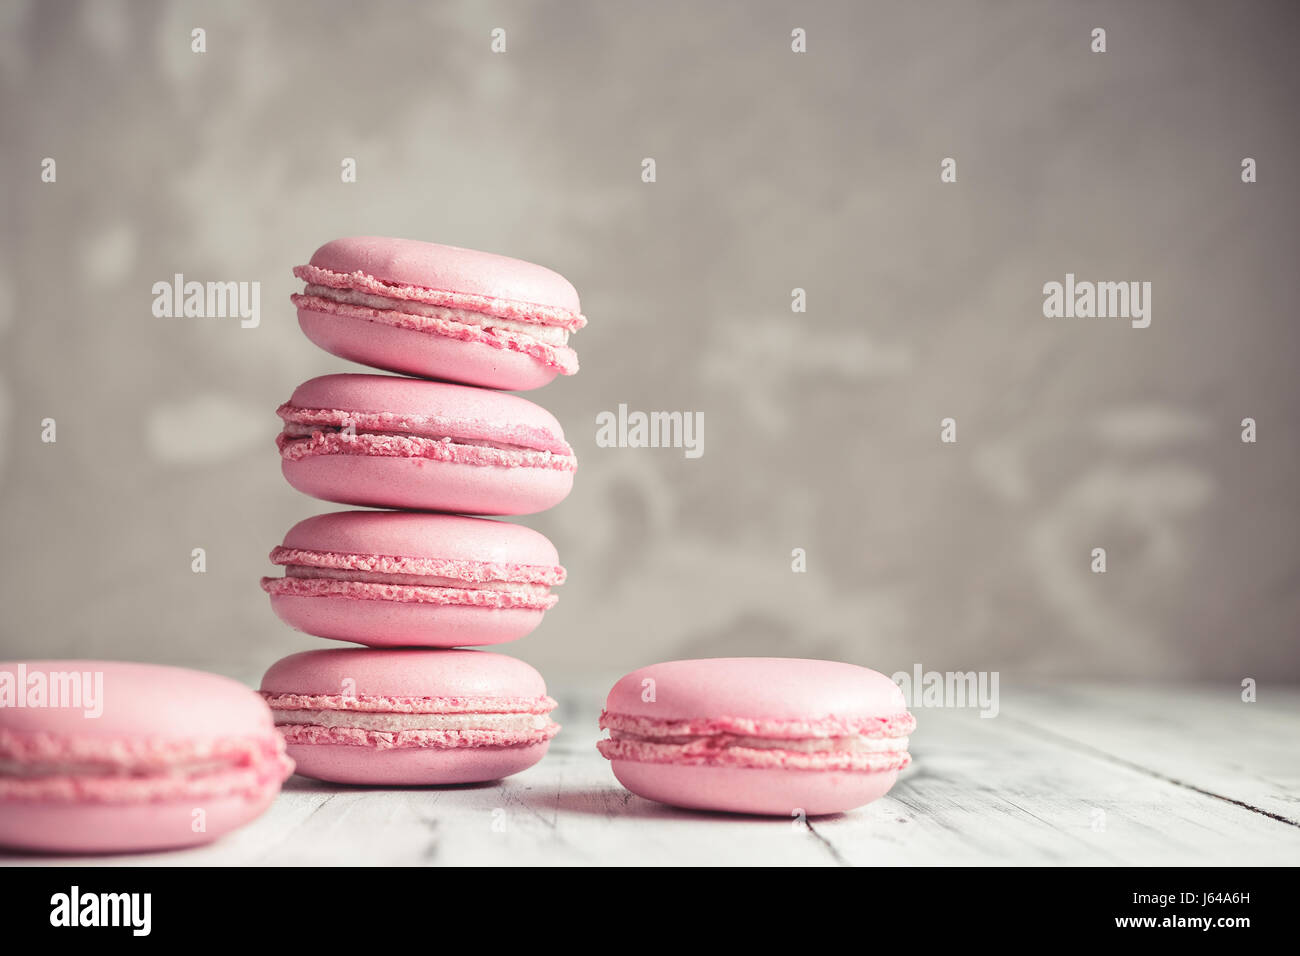 Stack of Raspberry pastel pink Macarons or Macaroons over grey concrete wall background - Stock Image